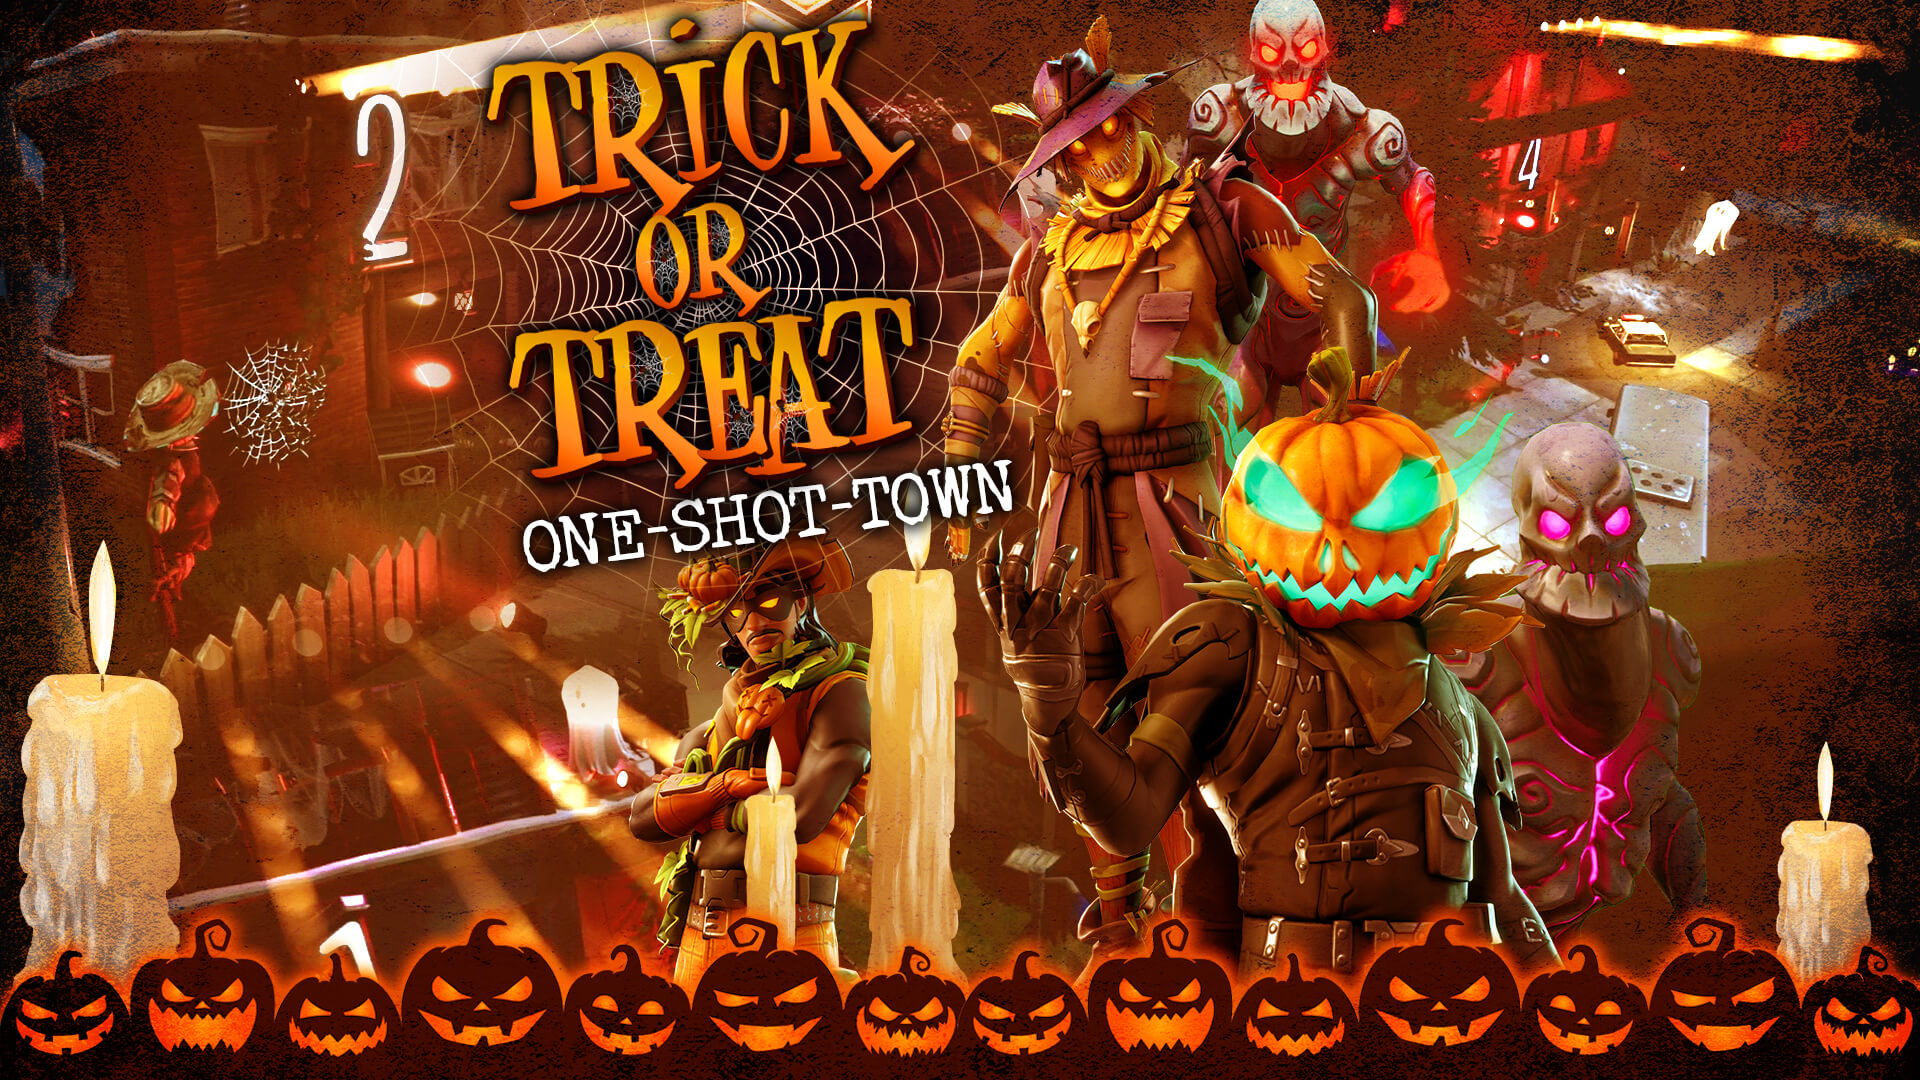 TRICK OR TREAT: ONE-SHOT-TOWN